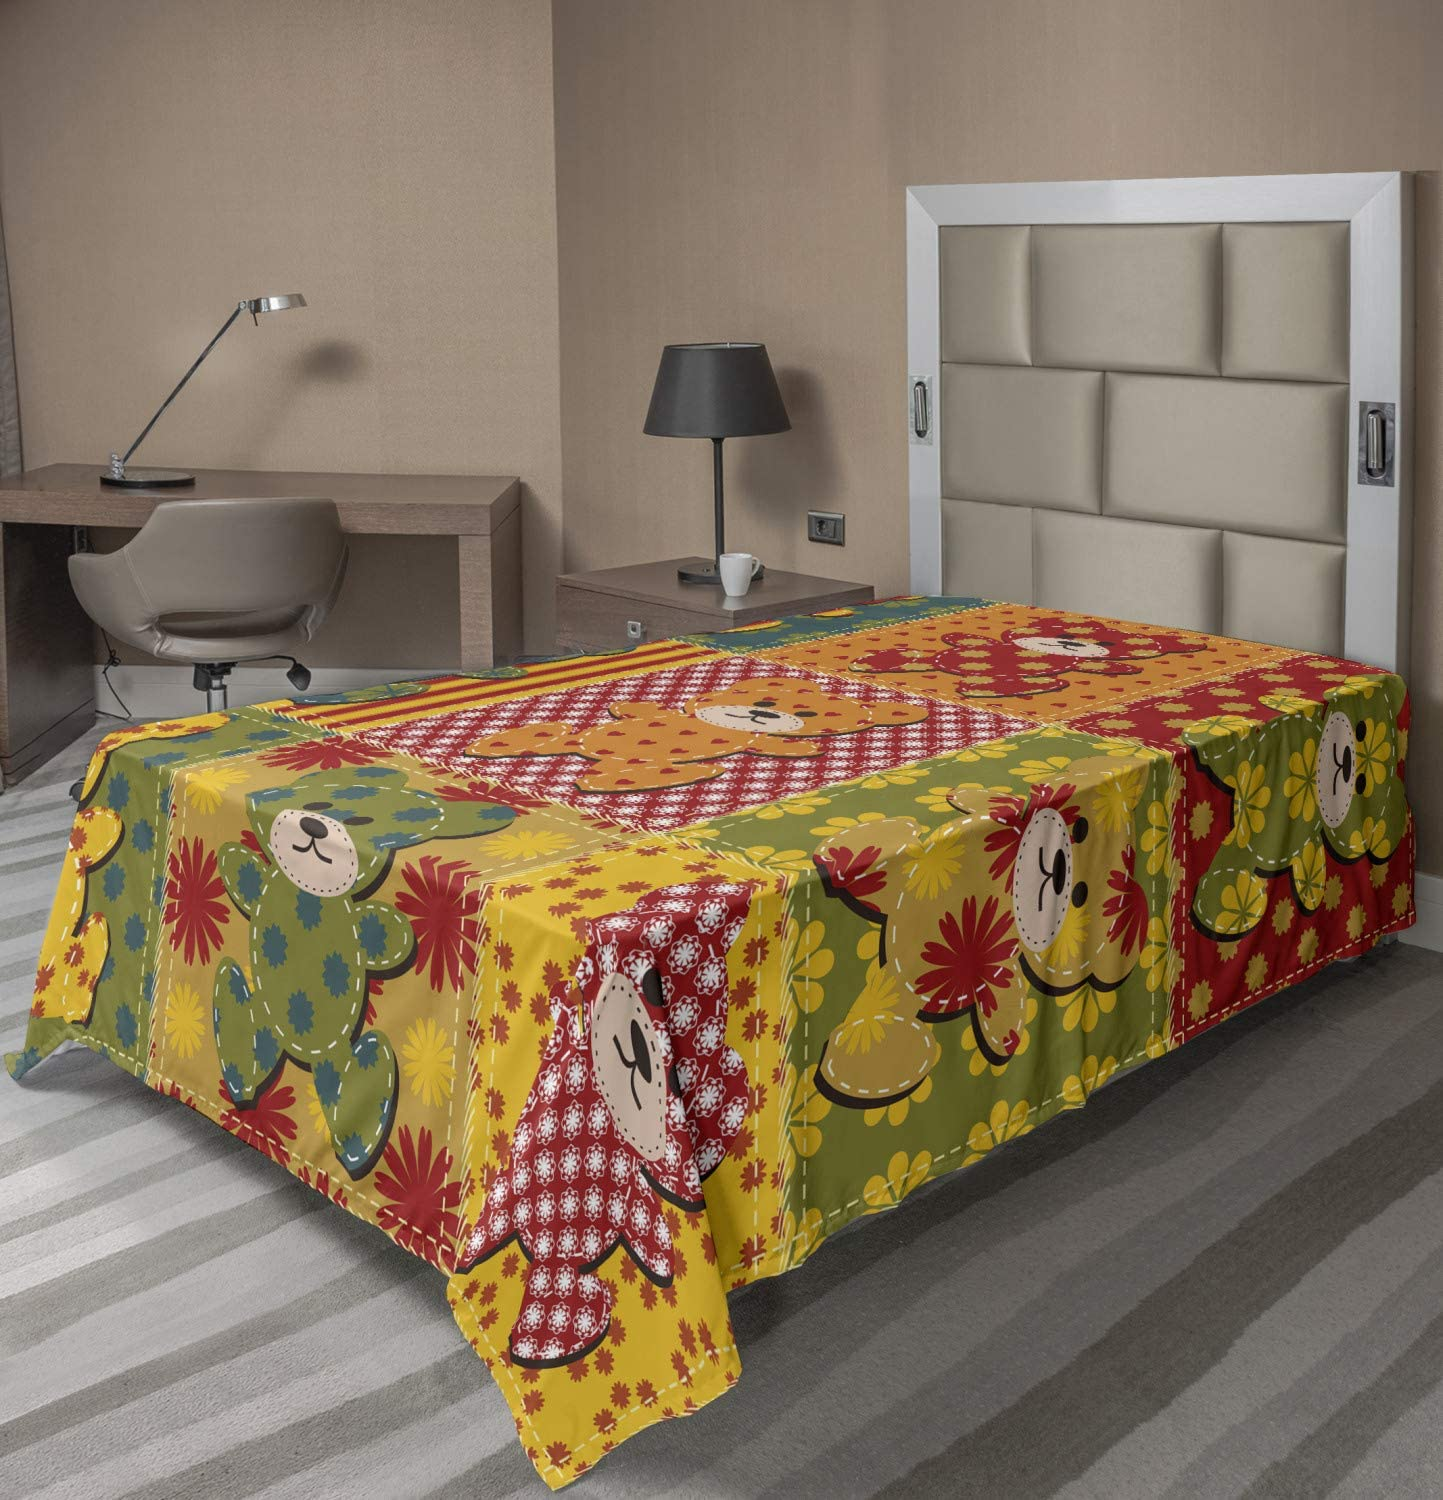 Max 46% OFF Lunarable Max 55% OFF Cabin Flat Sheet Colorful Styl Pattern Patchwork with